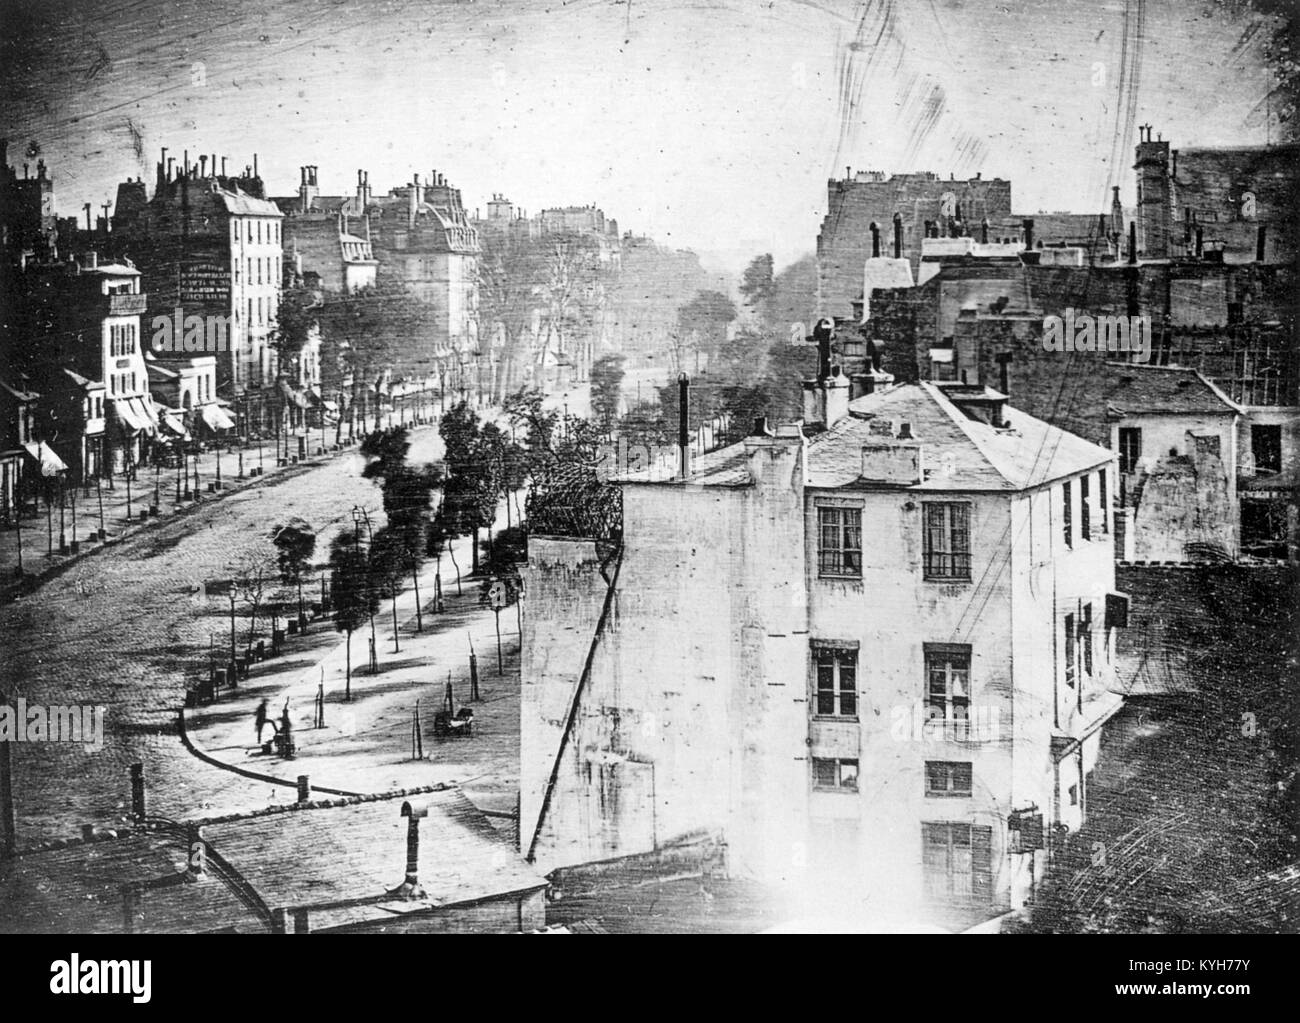 'Boulevard du Temple', taken by Daguerre in 1838 in Paris, includes the earliest known candid photograph - Stock Image